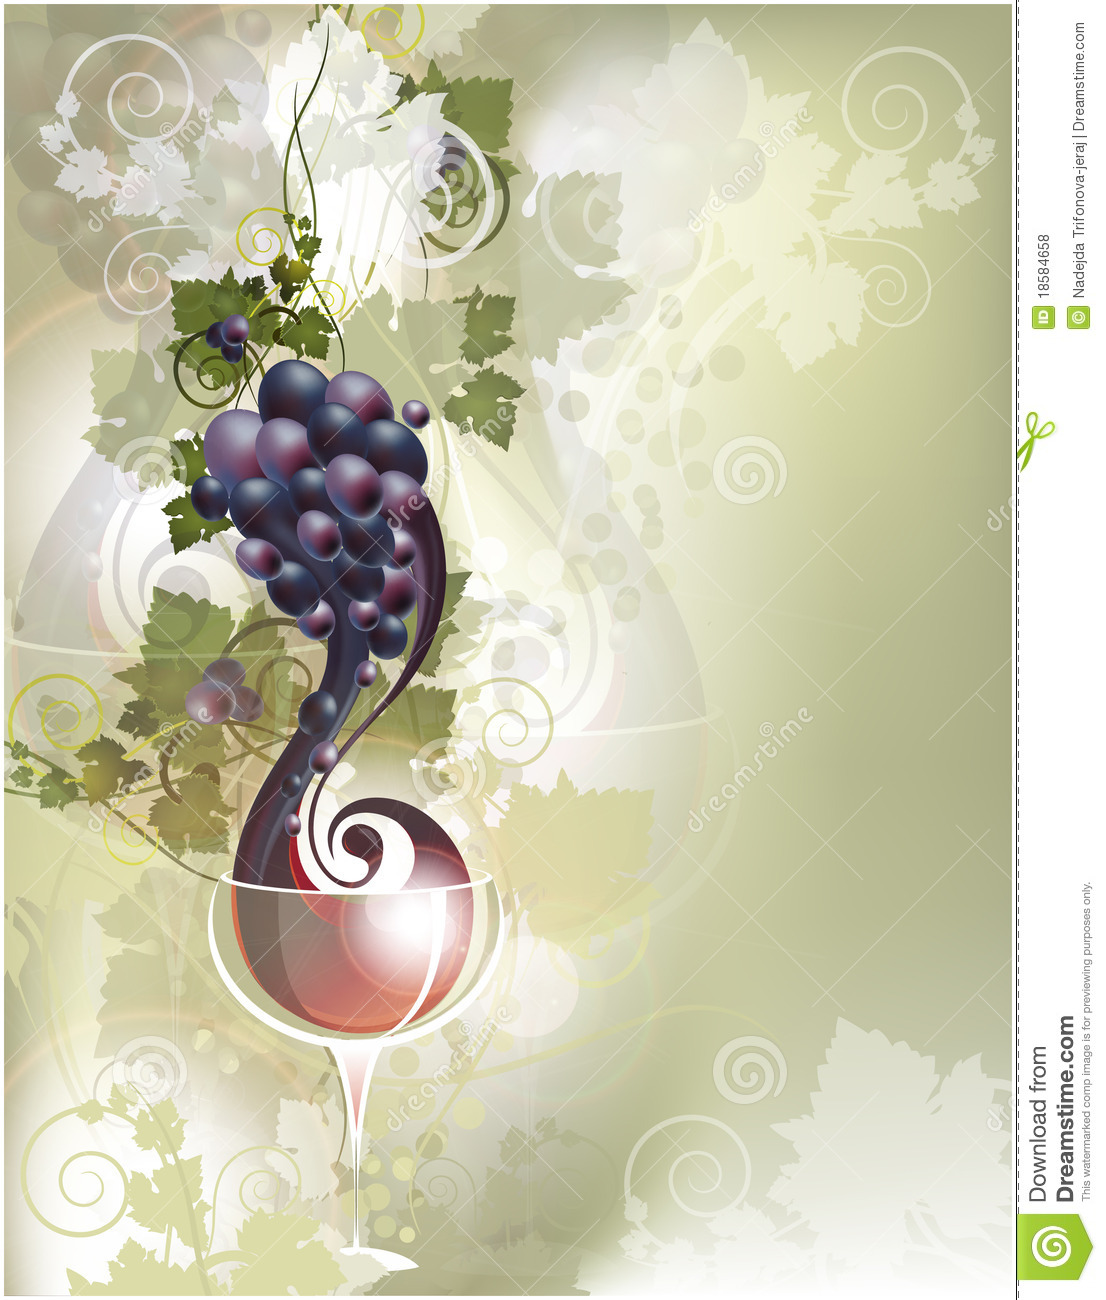 Background with red wine